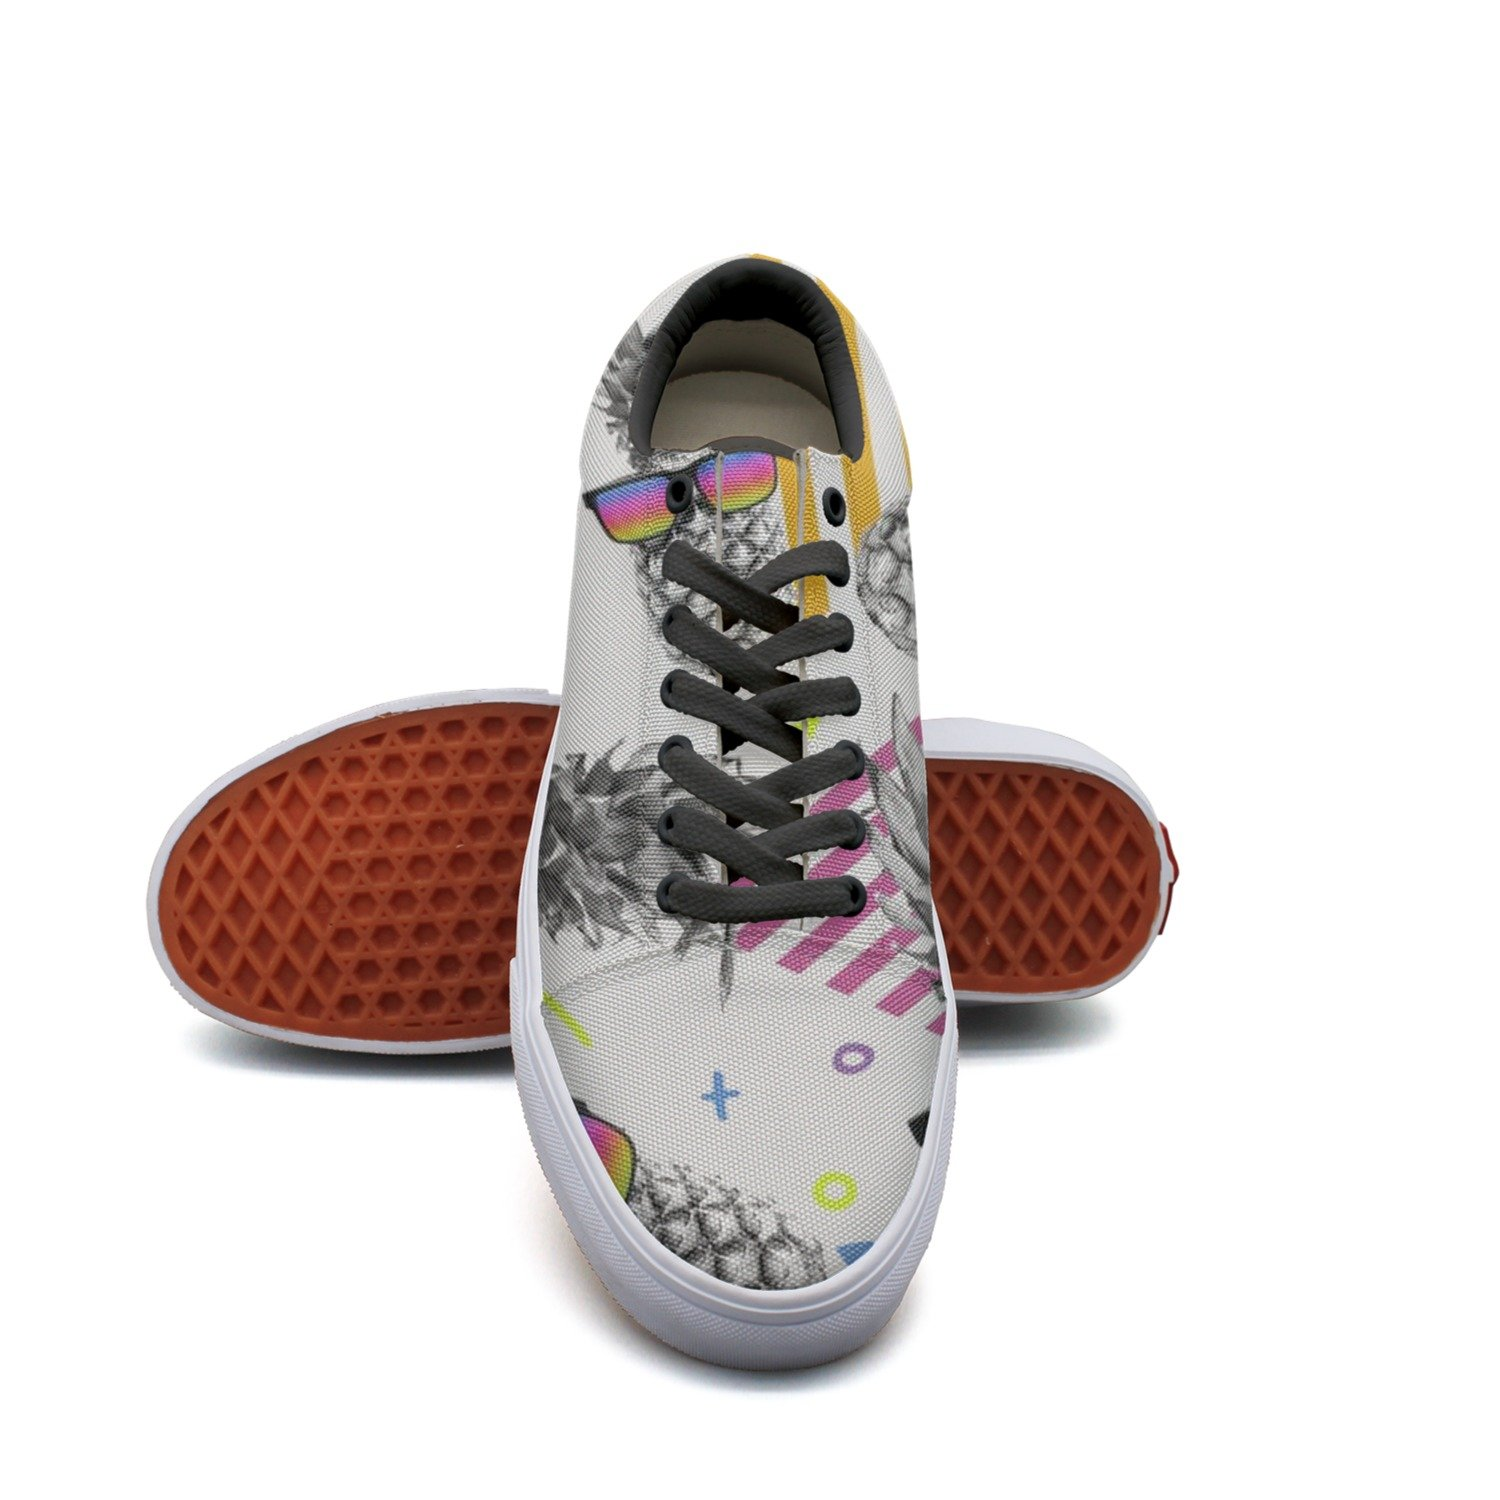 Awesome Style Pineapple With Vintage Eye Glasses Women¡s Casual Shoes Sneakers Flat Classic Nursing Gym